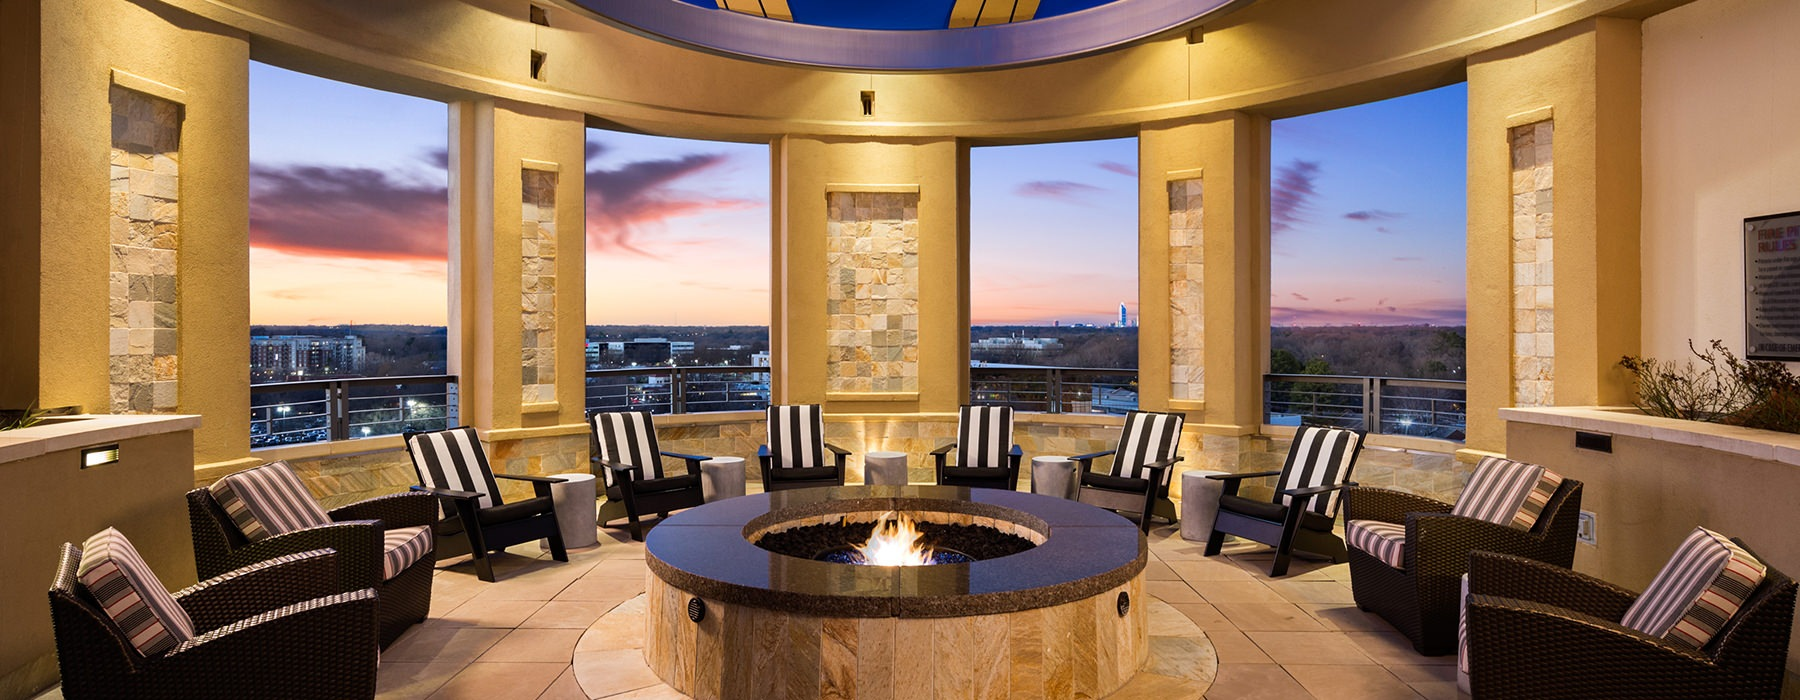 fire pit with lounge chairs